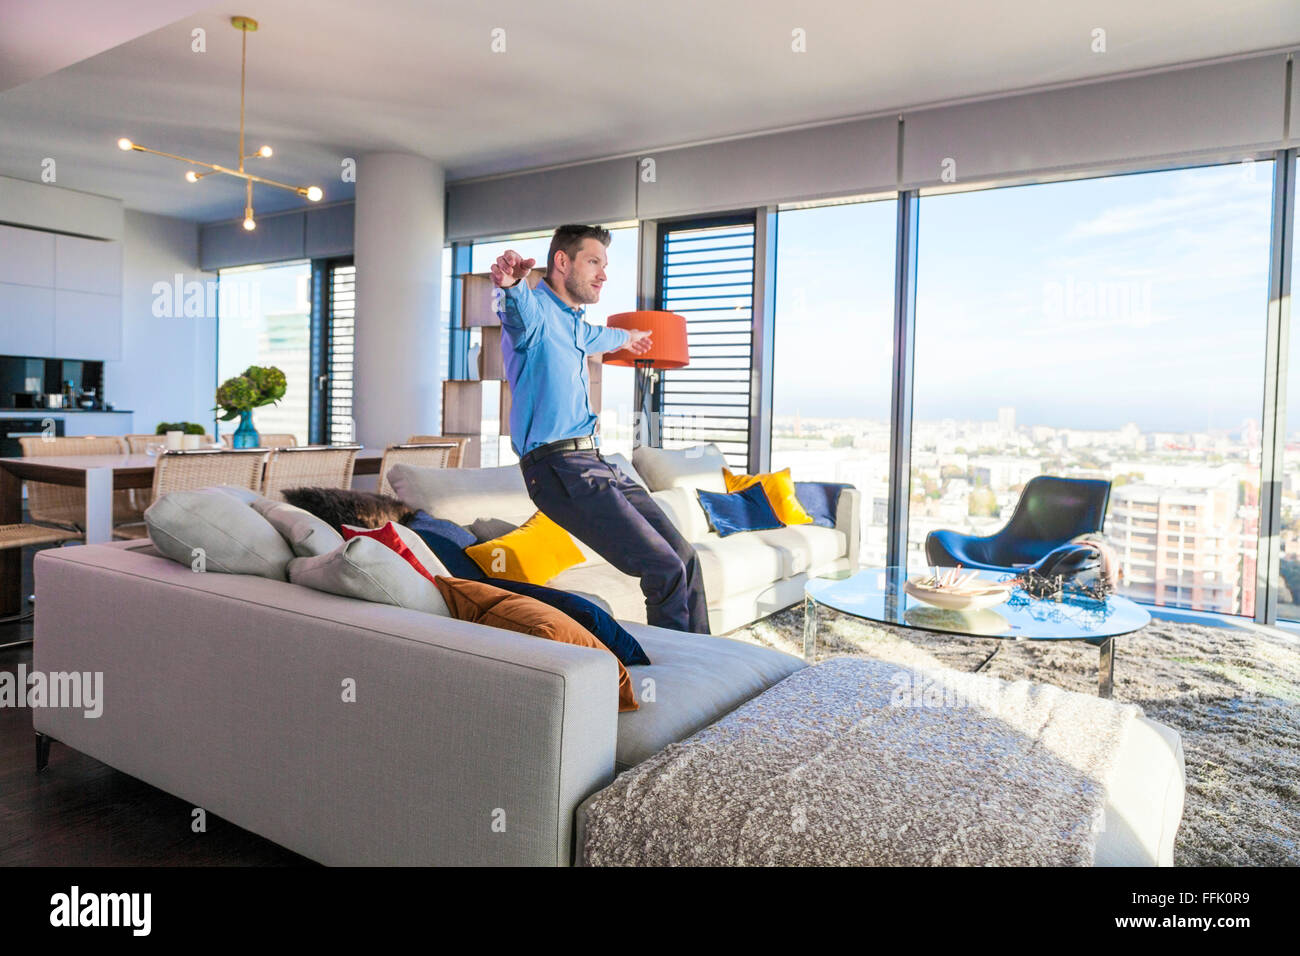 Man in apartment relaxing arms outstretched - Stock Image